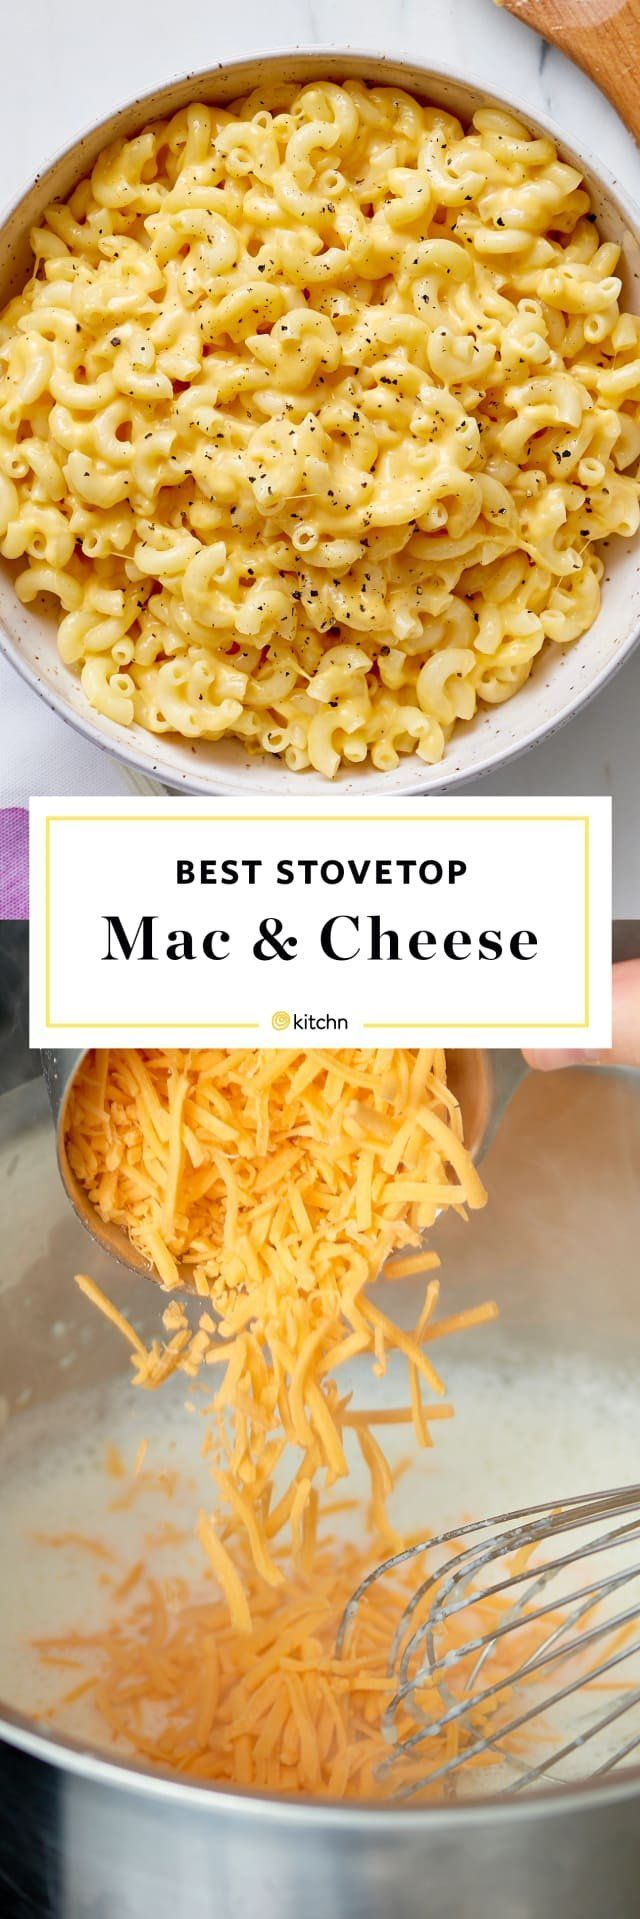 How To Make the Best Macaroni and Cheese on the Stove - #cheese #macaroni #stove - #Bacon